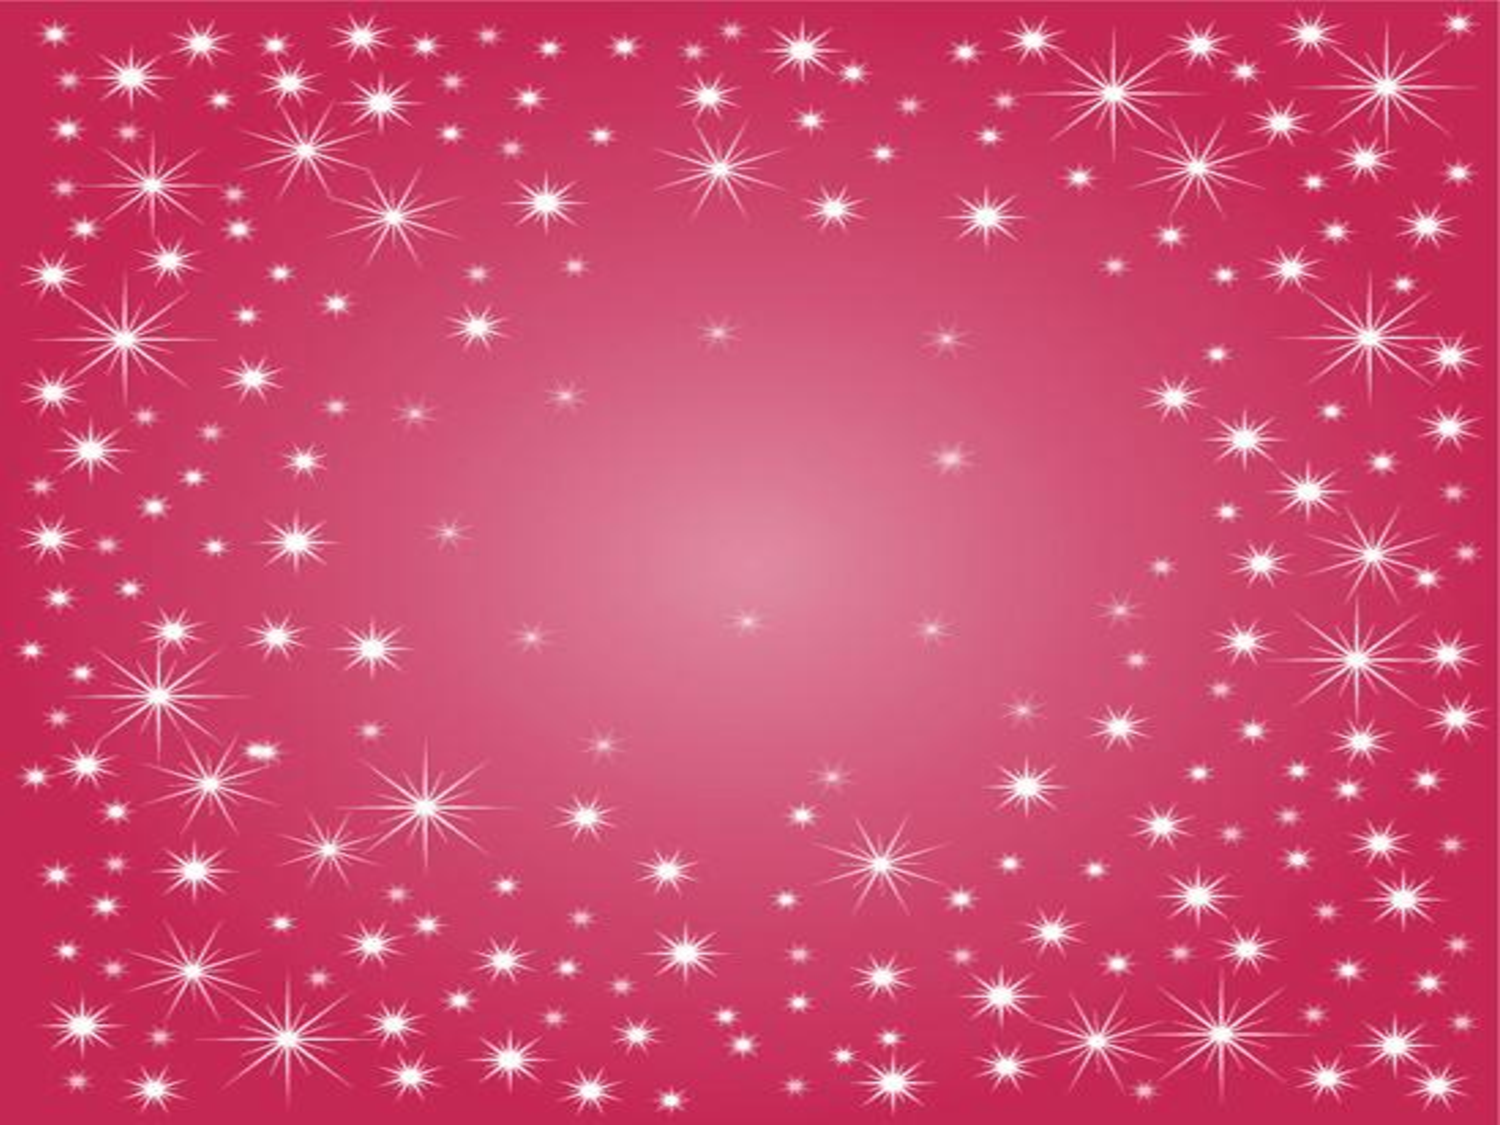 Glitter animated star background free powerpoint template deep glitter animated star background free powerpoint template deep pink sparkle background toneelgroepblik Image collections